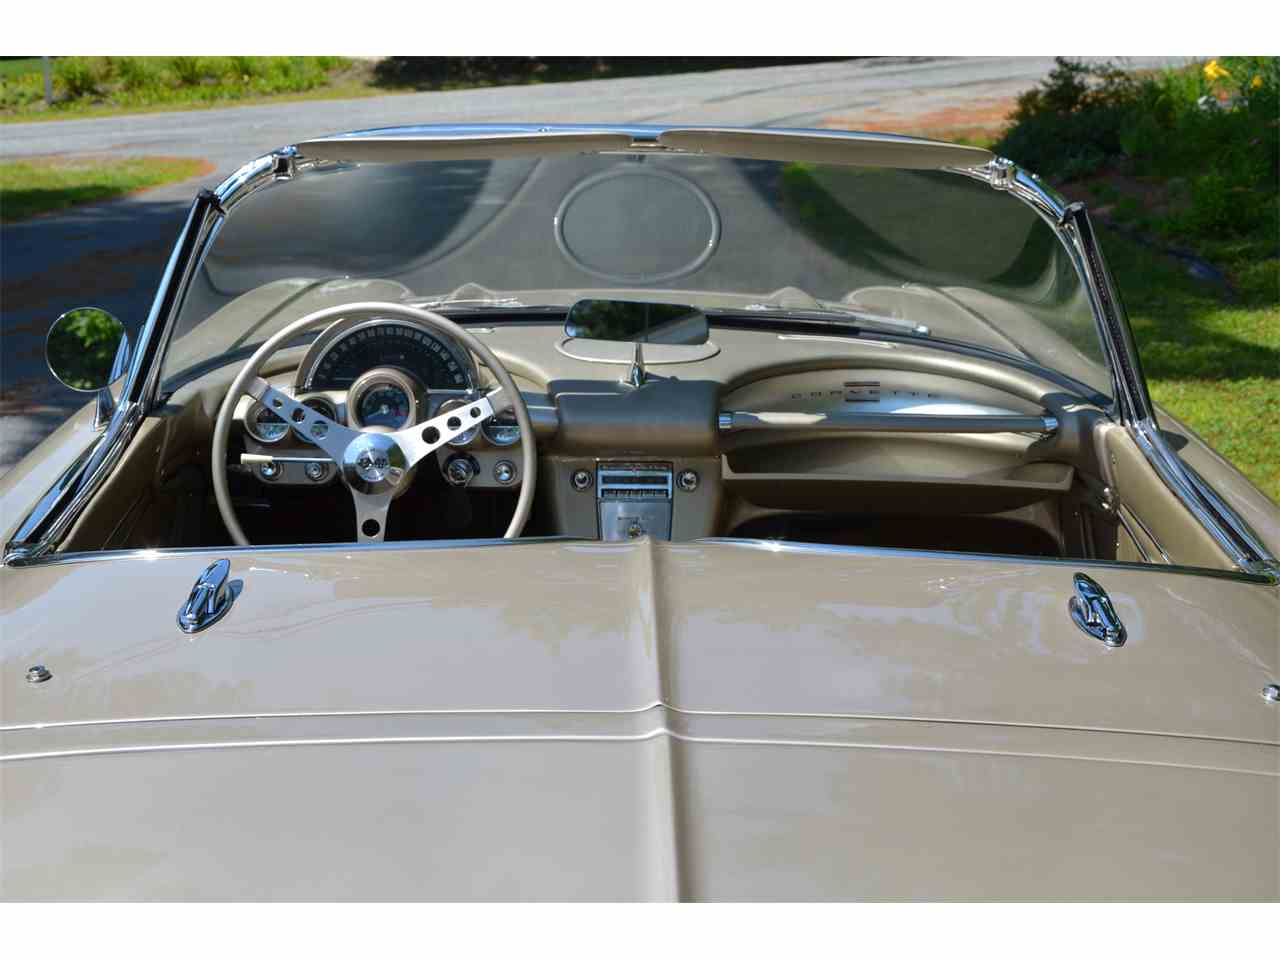 Large Picture of 1962 Chevrolet Corvette located in North Thetford Vermont - $130,000.00 Offered by a Private Seller - LWEM